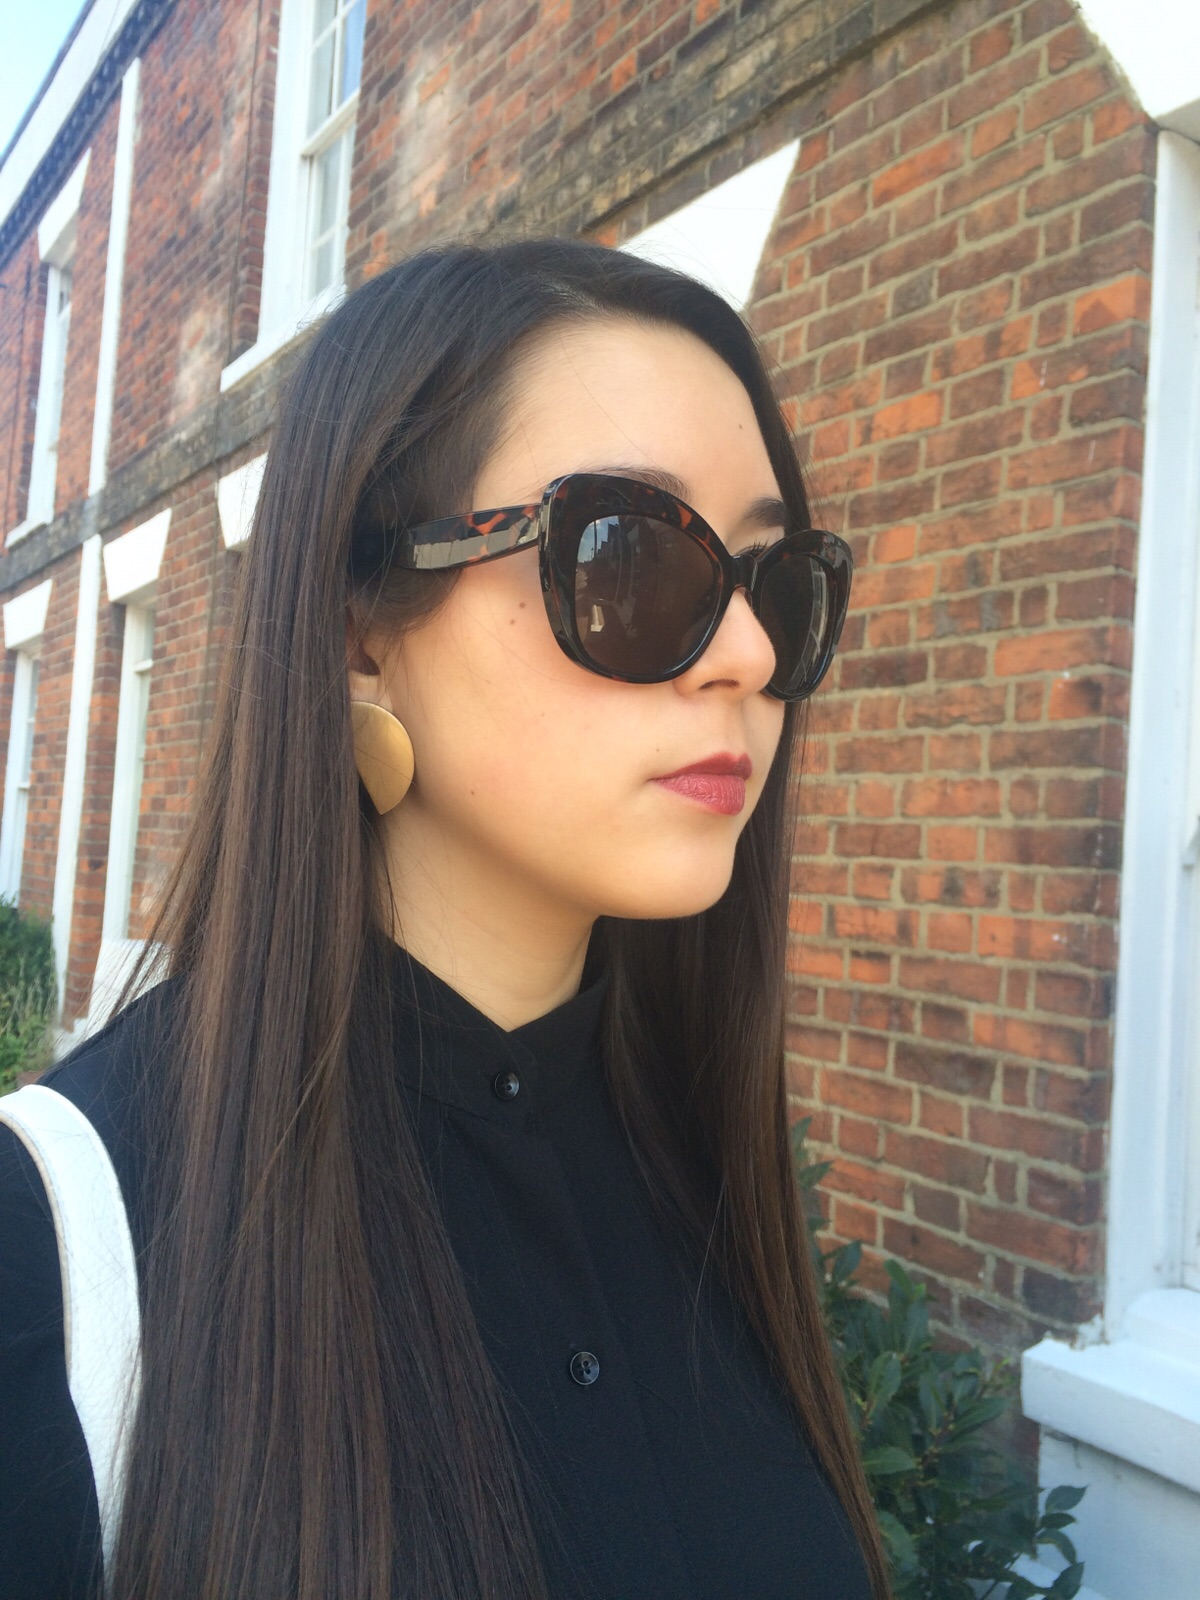 New Look cat eye sunglasses, lipstick, topshop earrings, fashion blogger, ootd, outfit post, street style